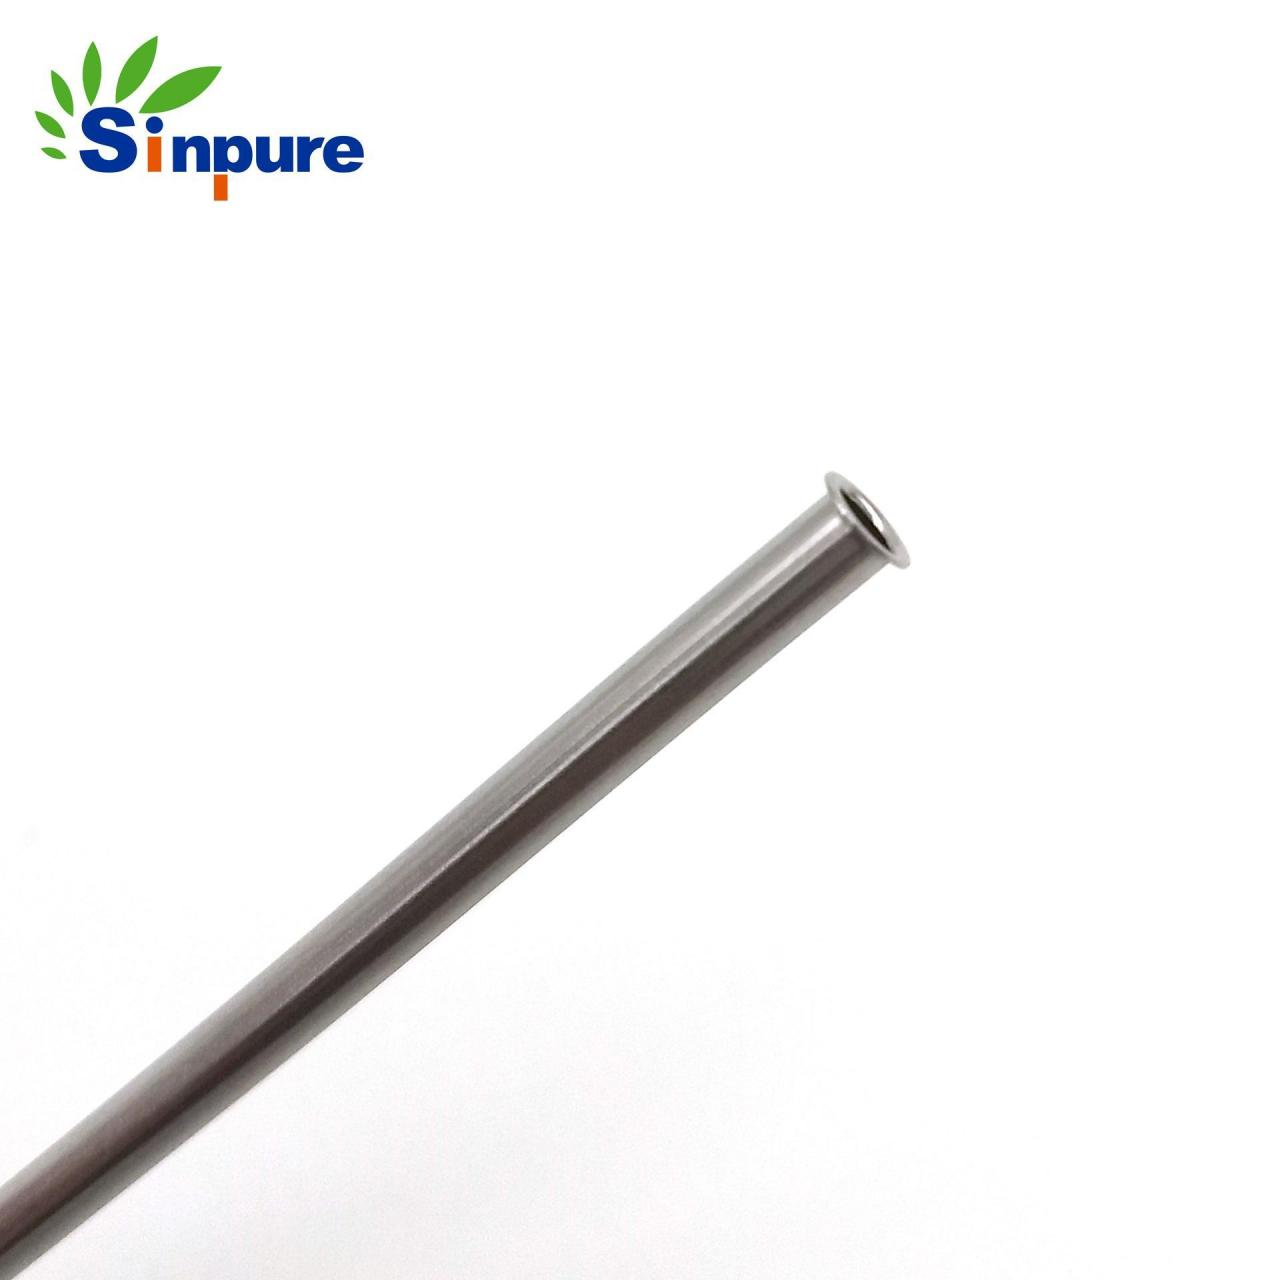 Sinpure Stainless steel 316 needle cannula with flared end tip